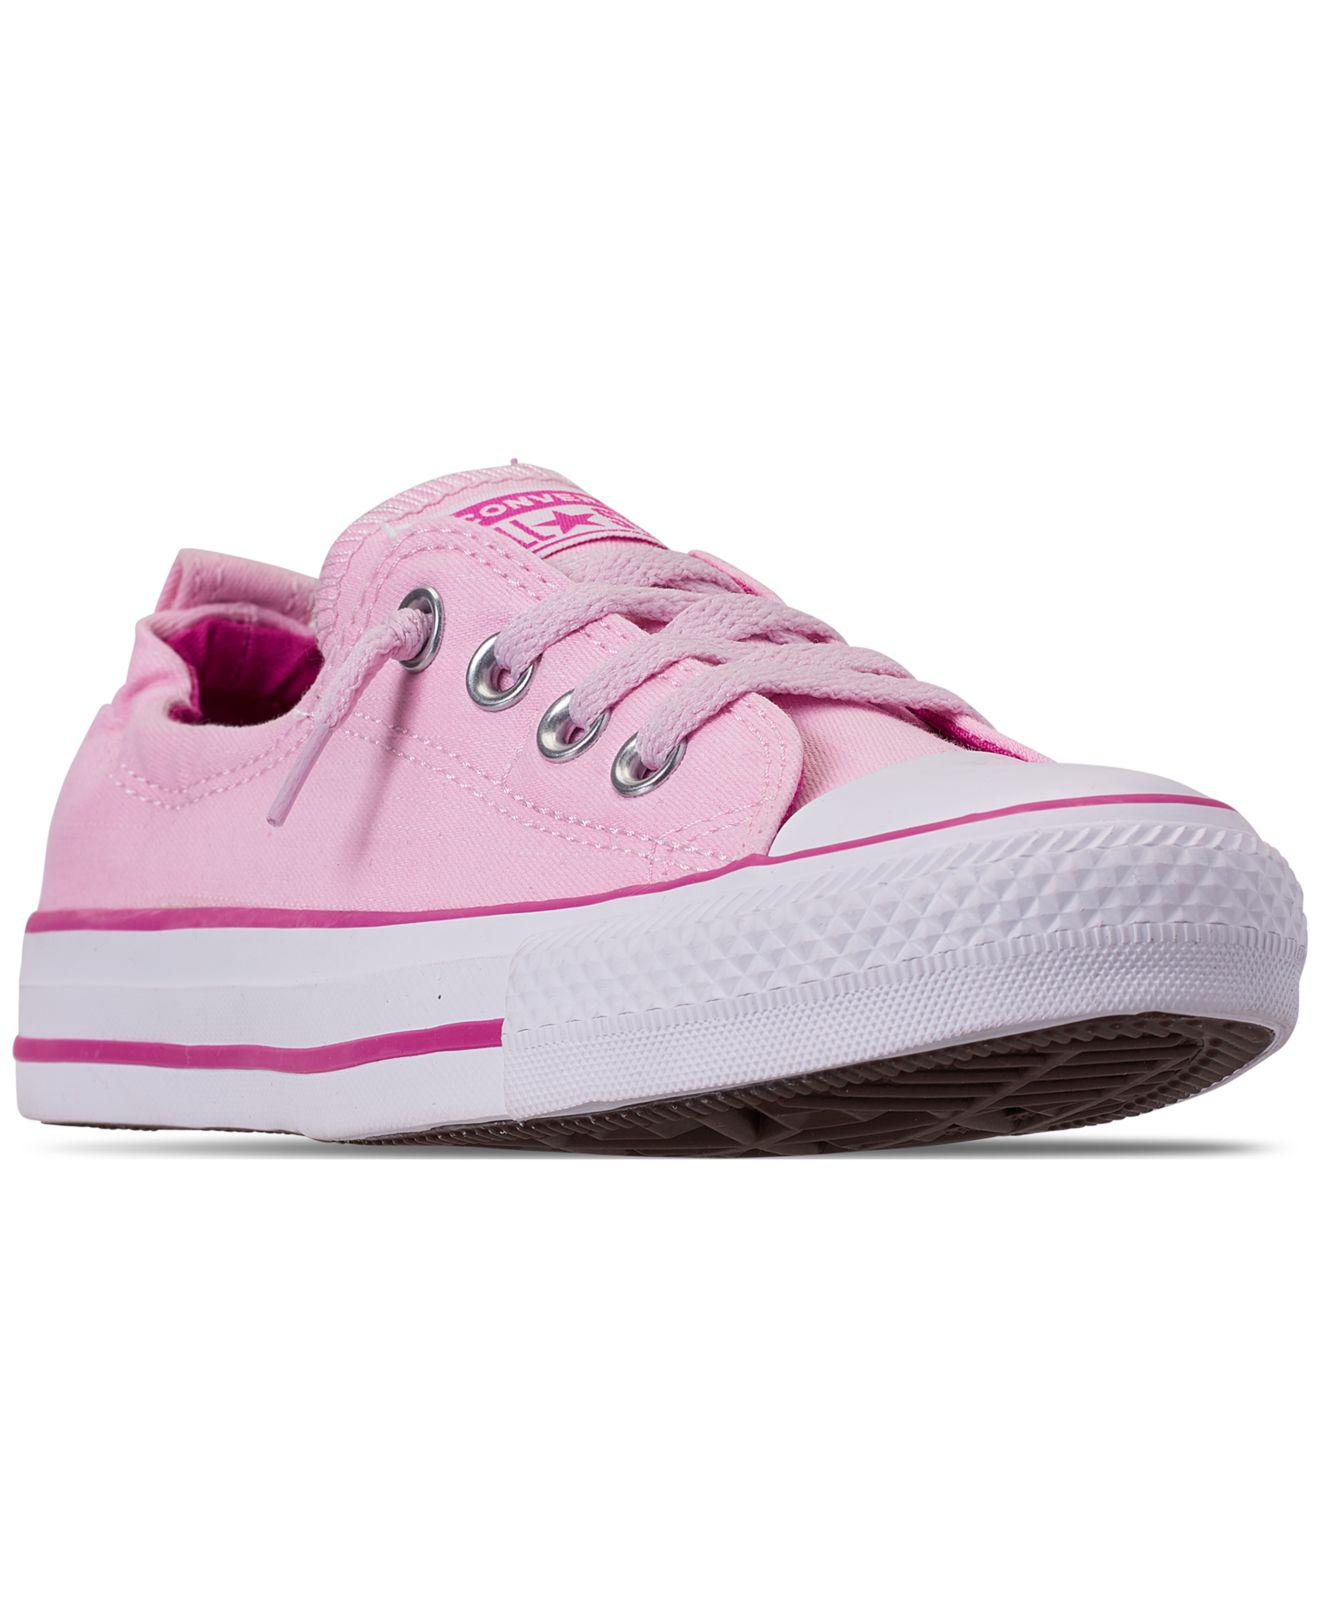 Converse. Pink Chuck Taylor All Star Shoreline Slip-on Sneaker (women) 4416a43db